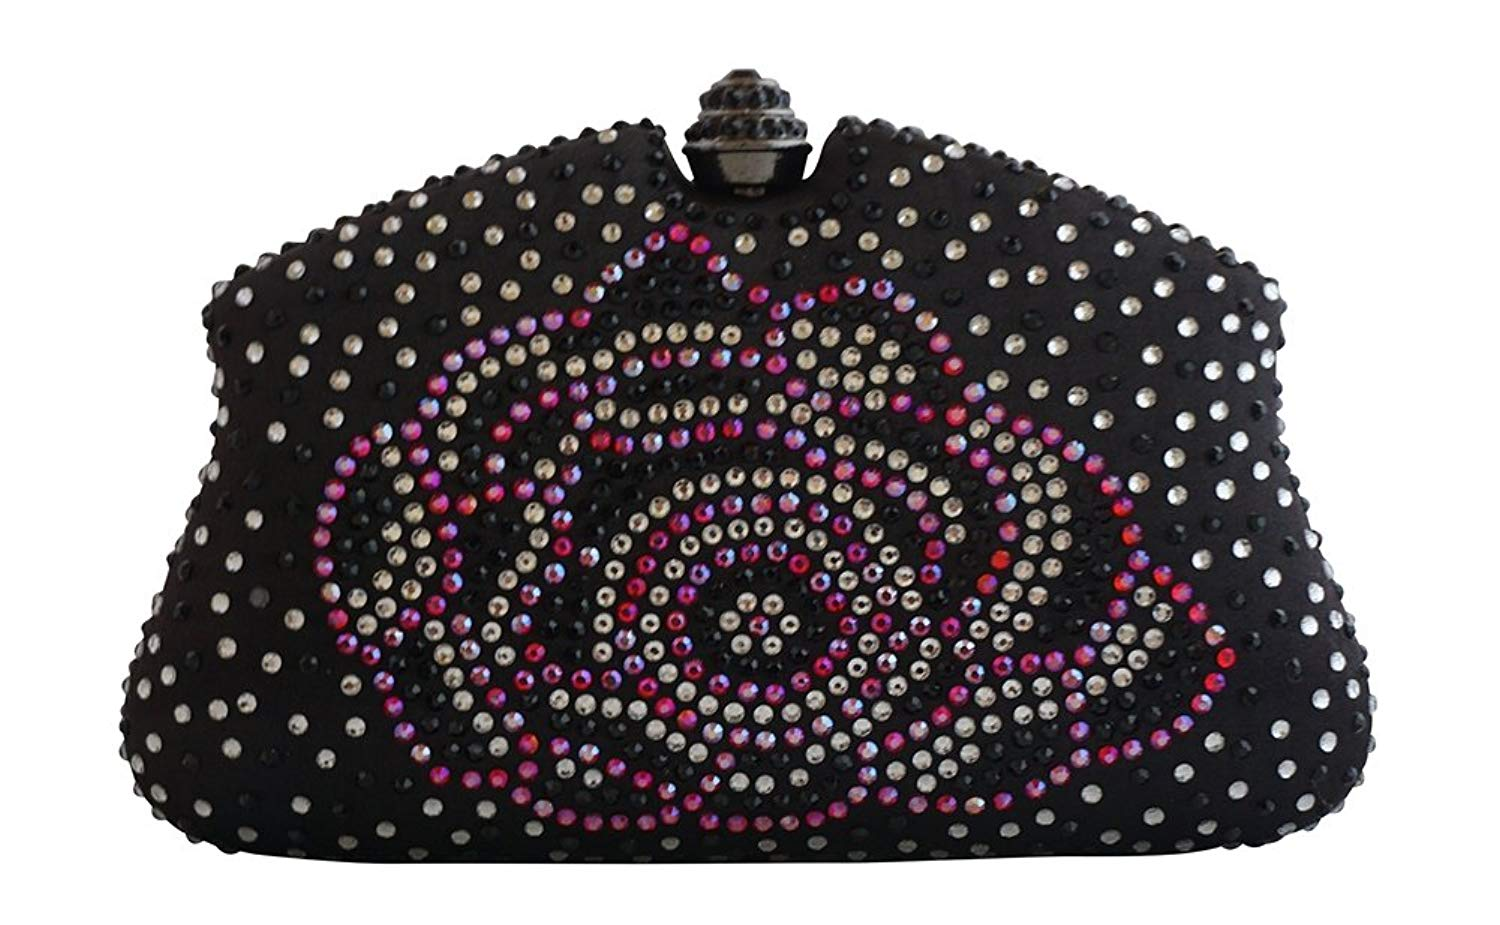 207b29bd34 Get Quotations · Chicastic Multi Color Rhinestone Crystal Hard Box Cocktail  Clutch Purse